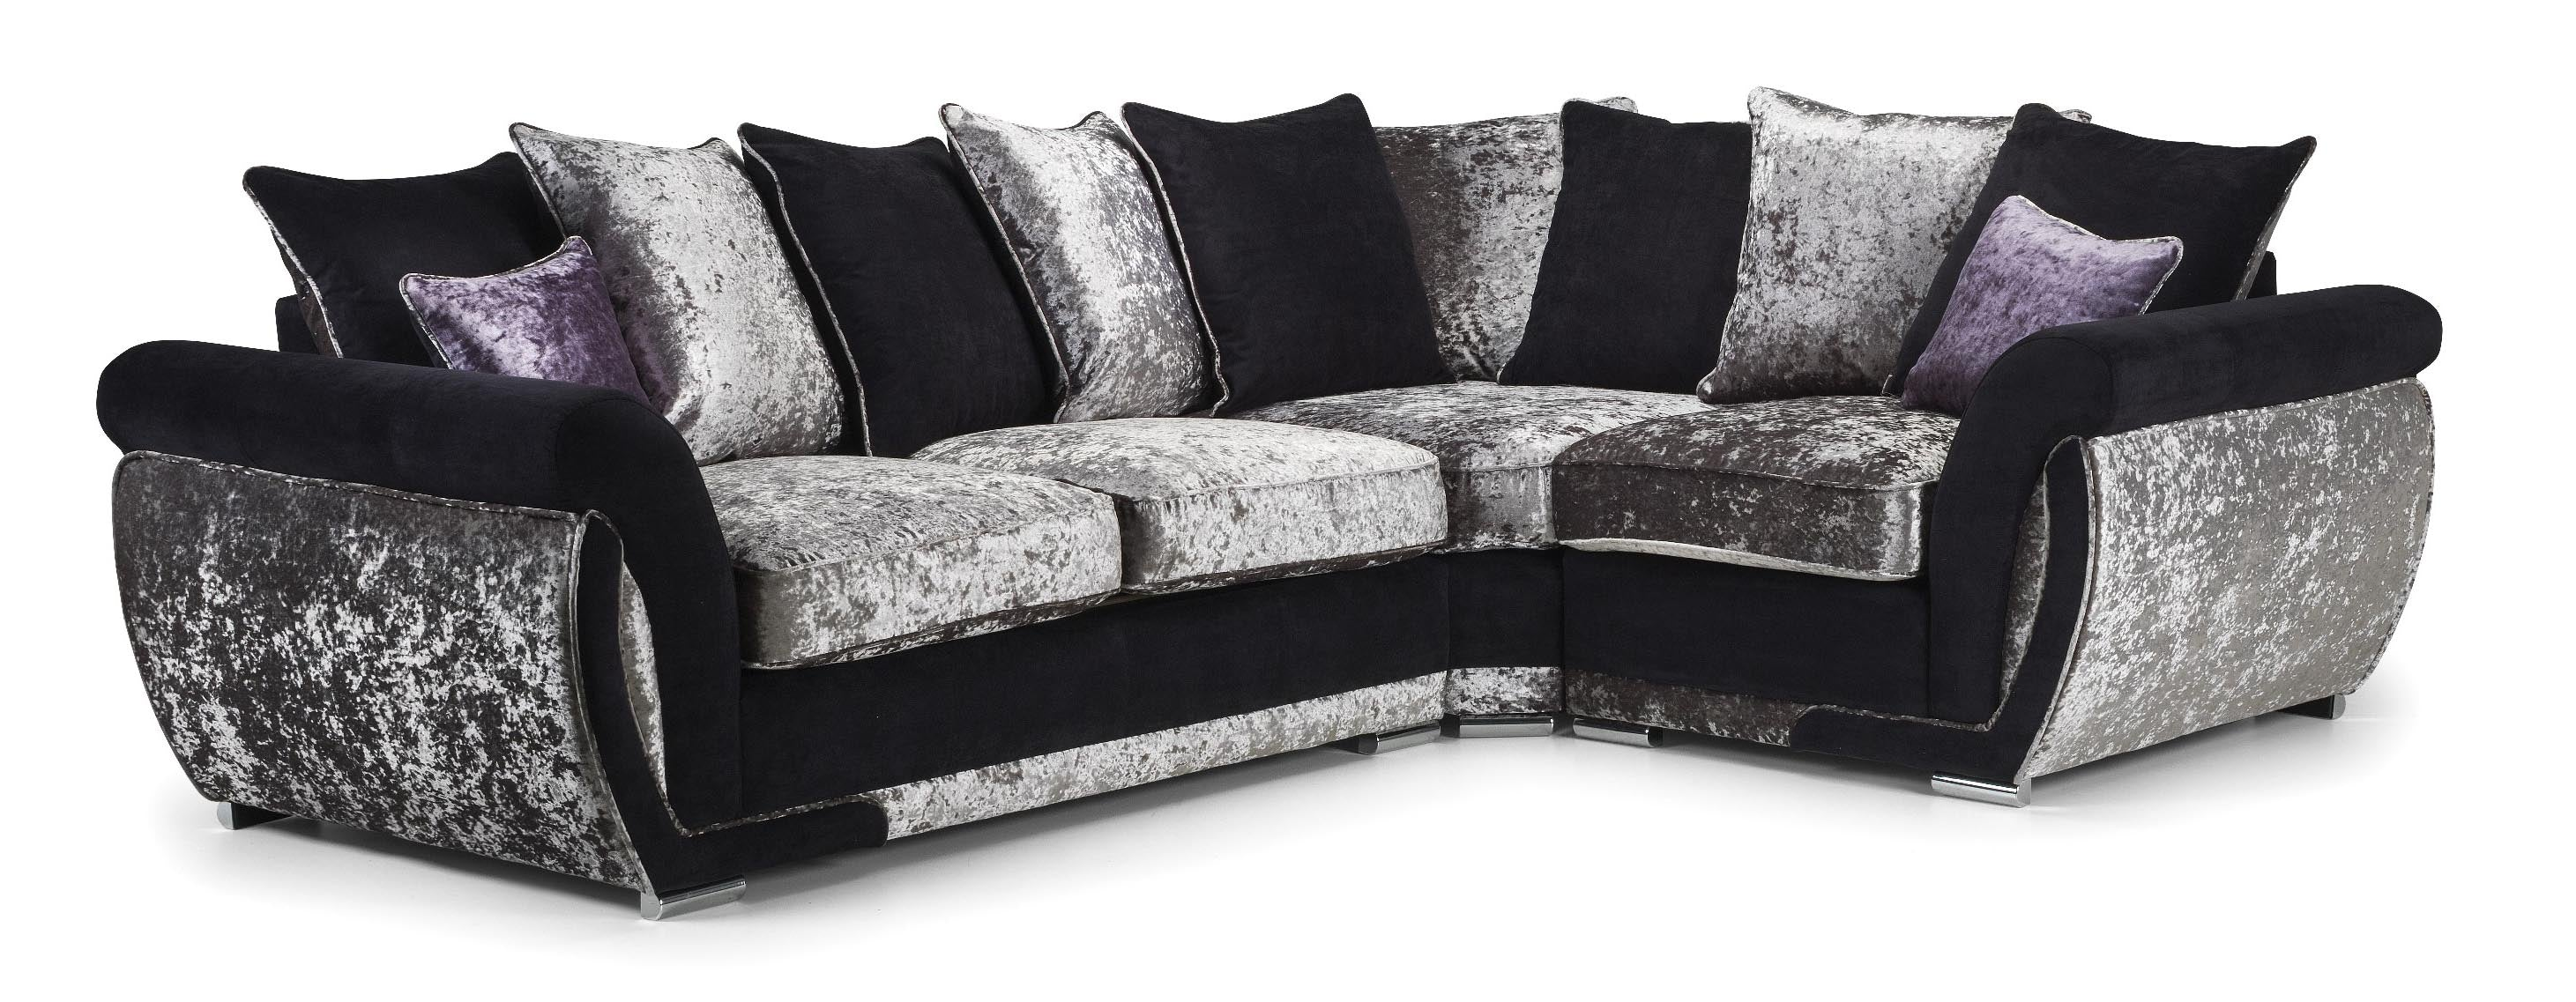 Crushed velvet sofas near Chesterfield